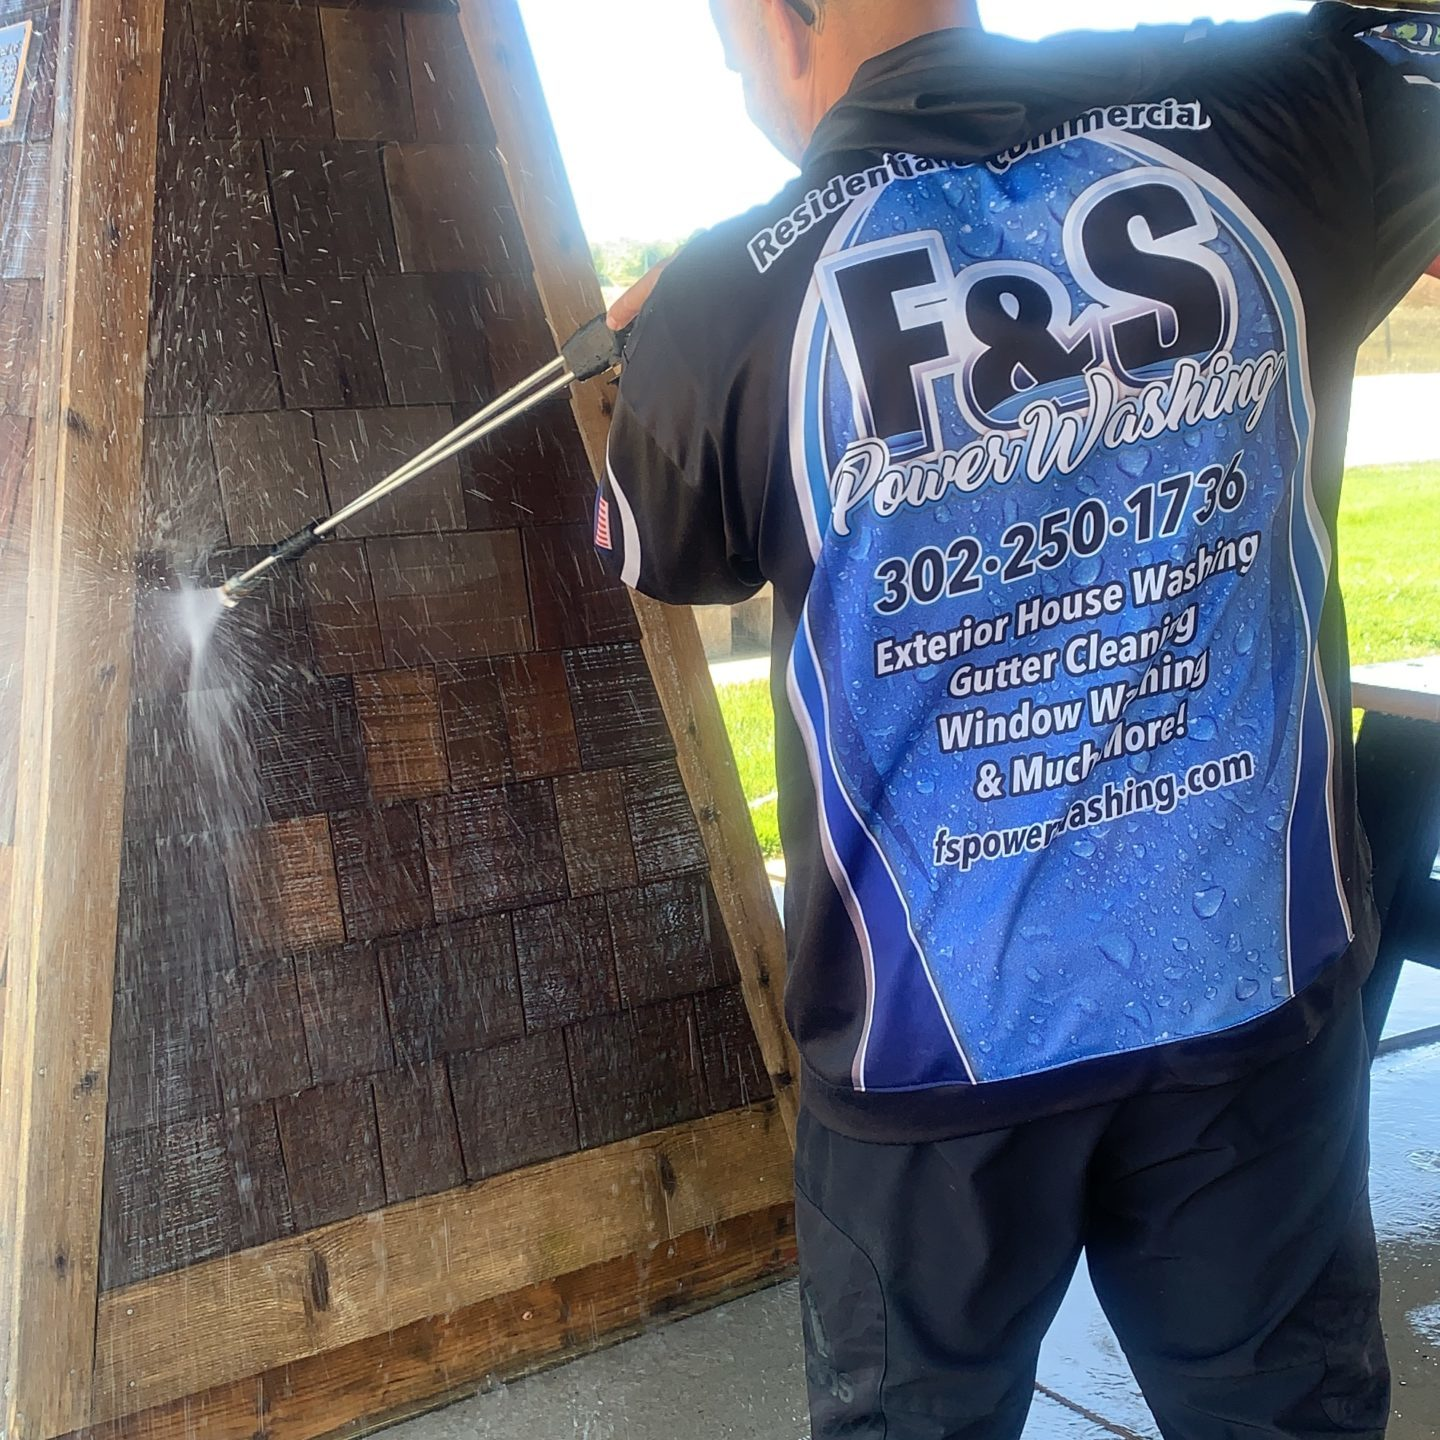 The F&S PowerWashing team uses the most advanced pressure-washing systems to eliminate the most common pollutants from wooden surfaces. Our team is insured, bonded, and experienced to handle every washing session with guaranteed quality. We continuously develop our processes to ensure that homeowners receive the most cost-effective and environmentally friendly cleaning solution for their precious woodwork.